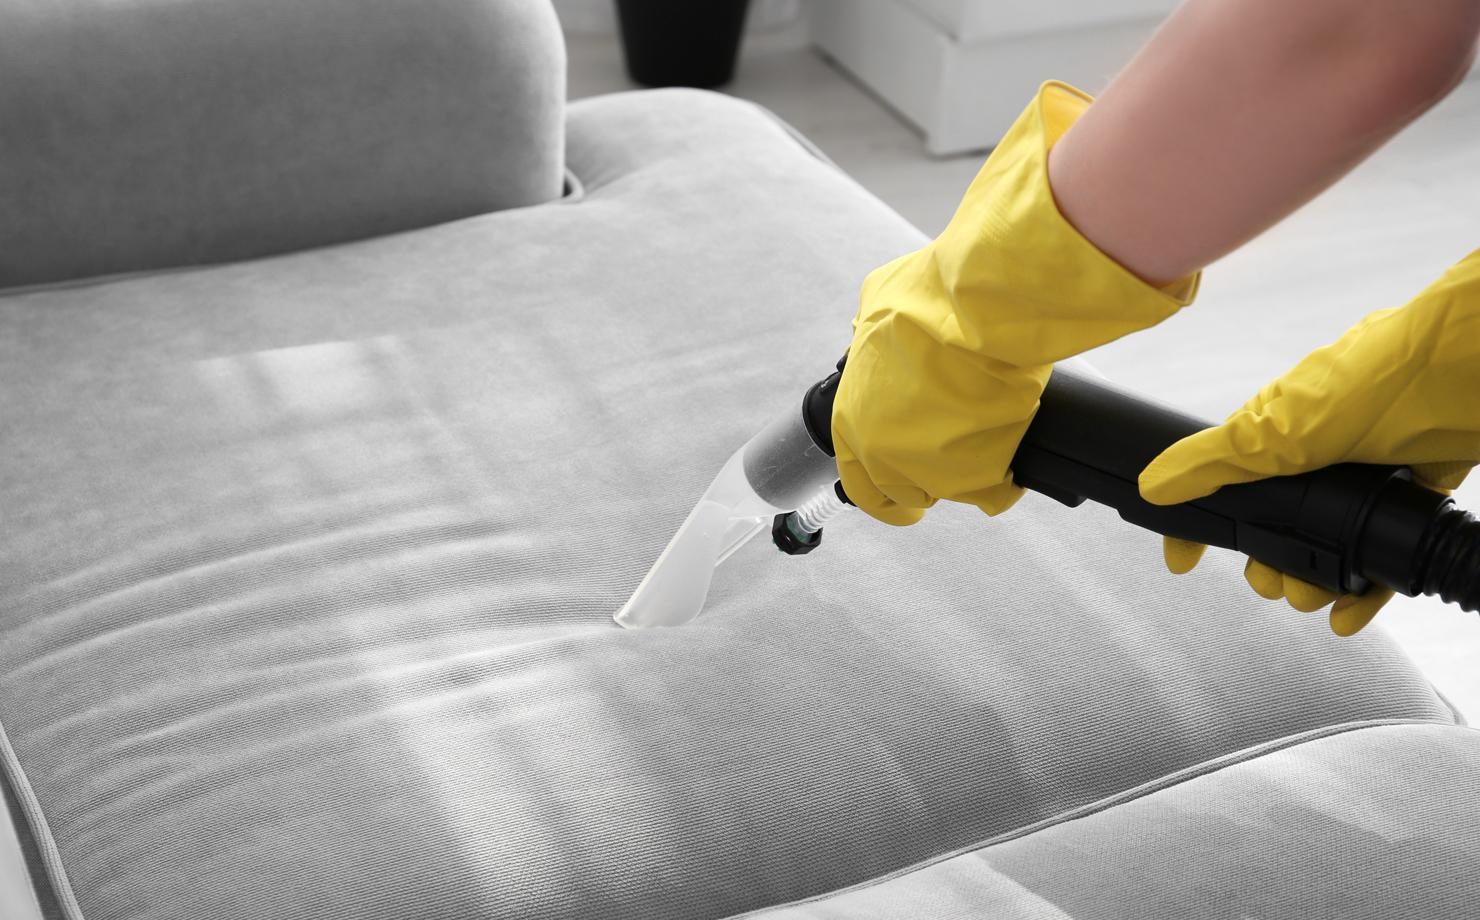 Steam cleaning upholstery.